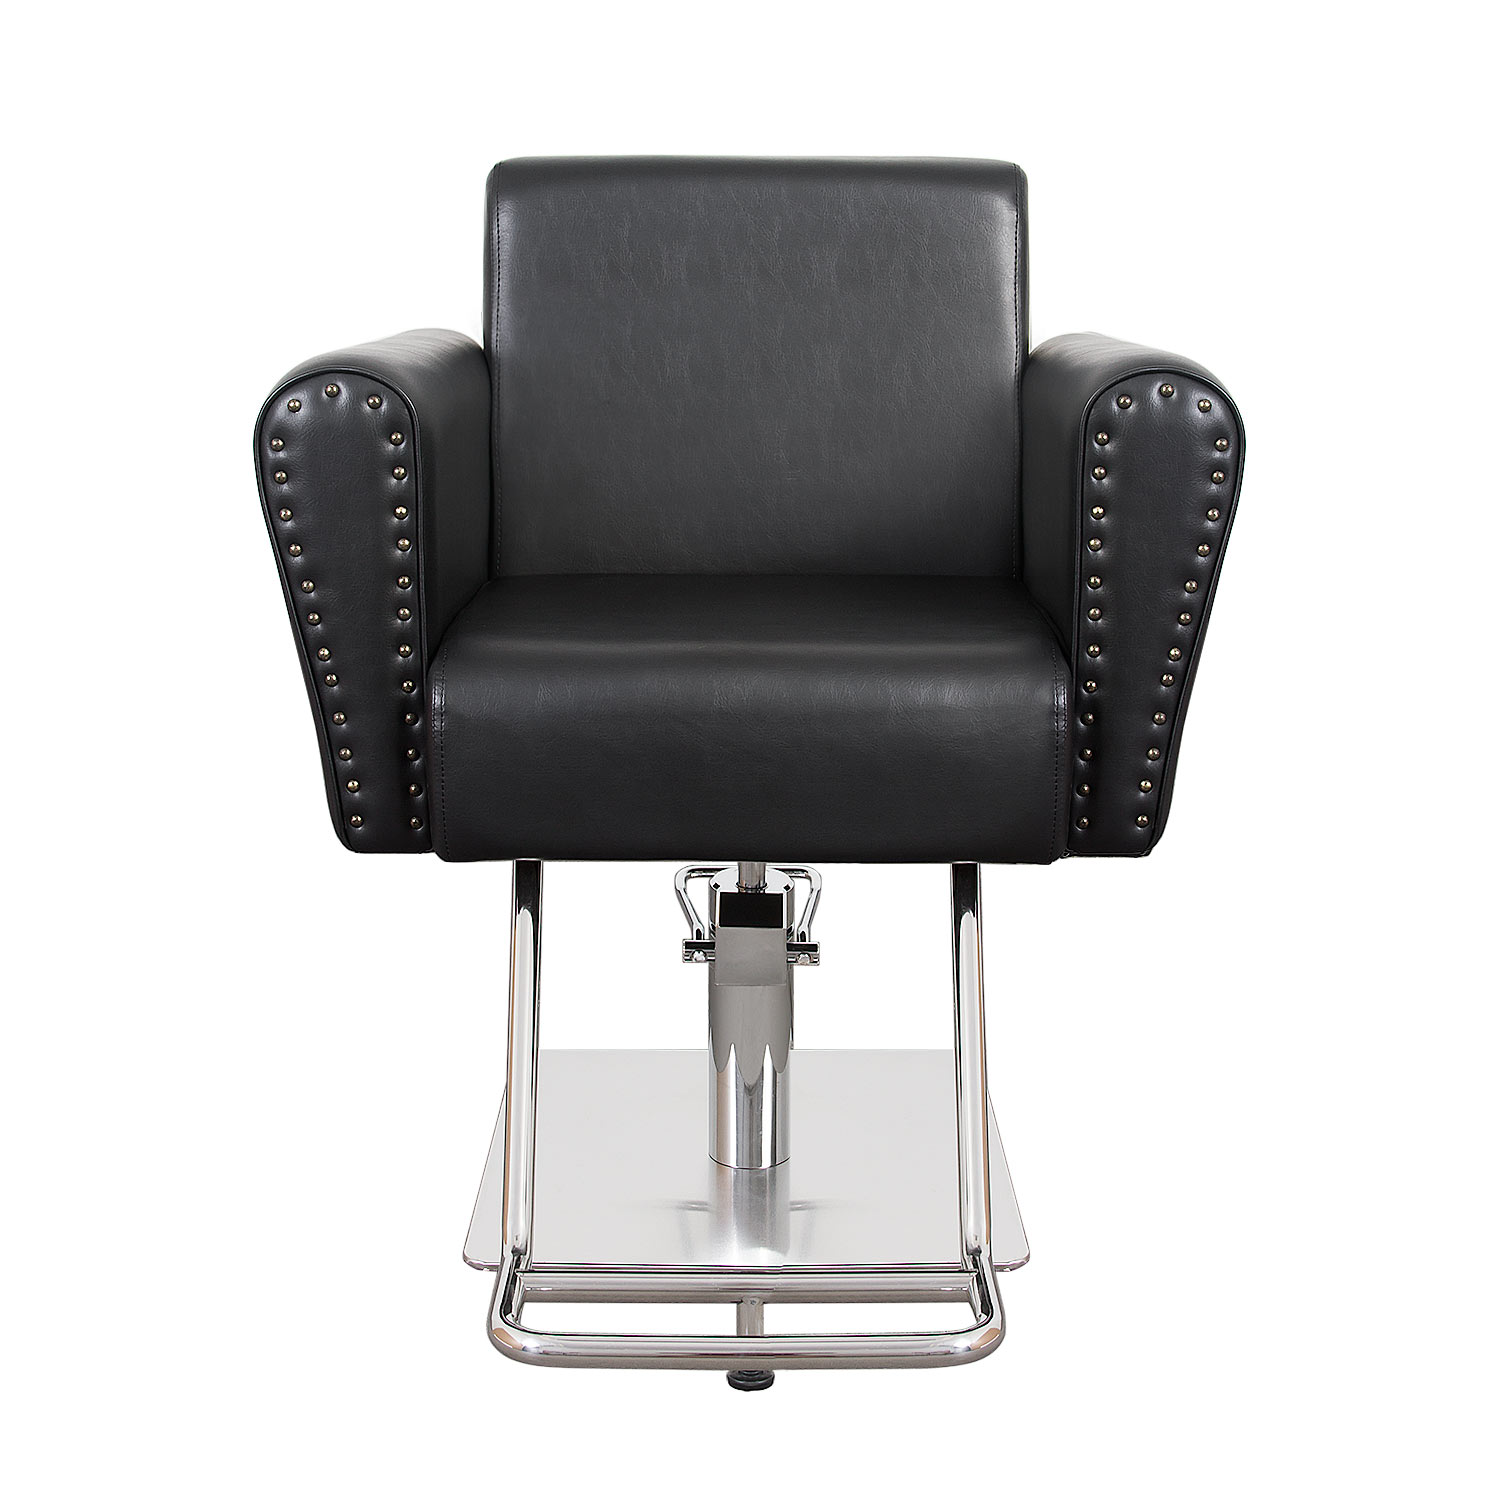 Avalon Squared Styling Chair With Nailhead Trim alternative product image 1